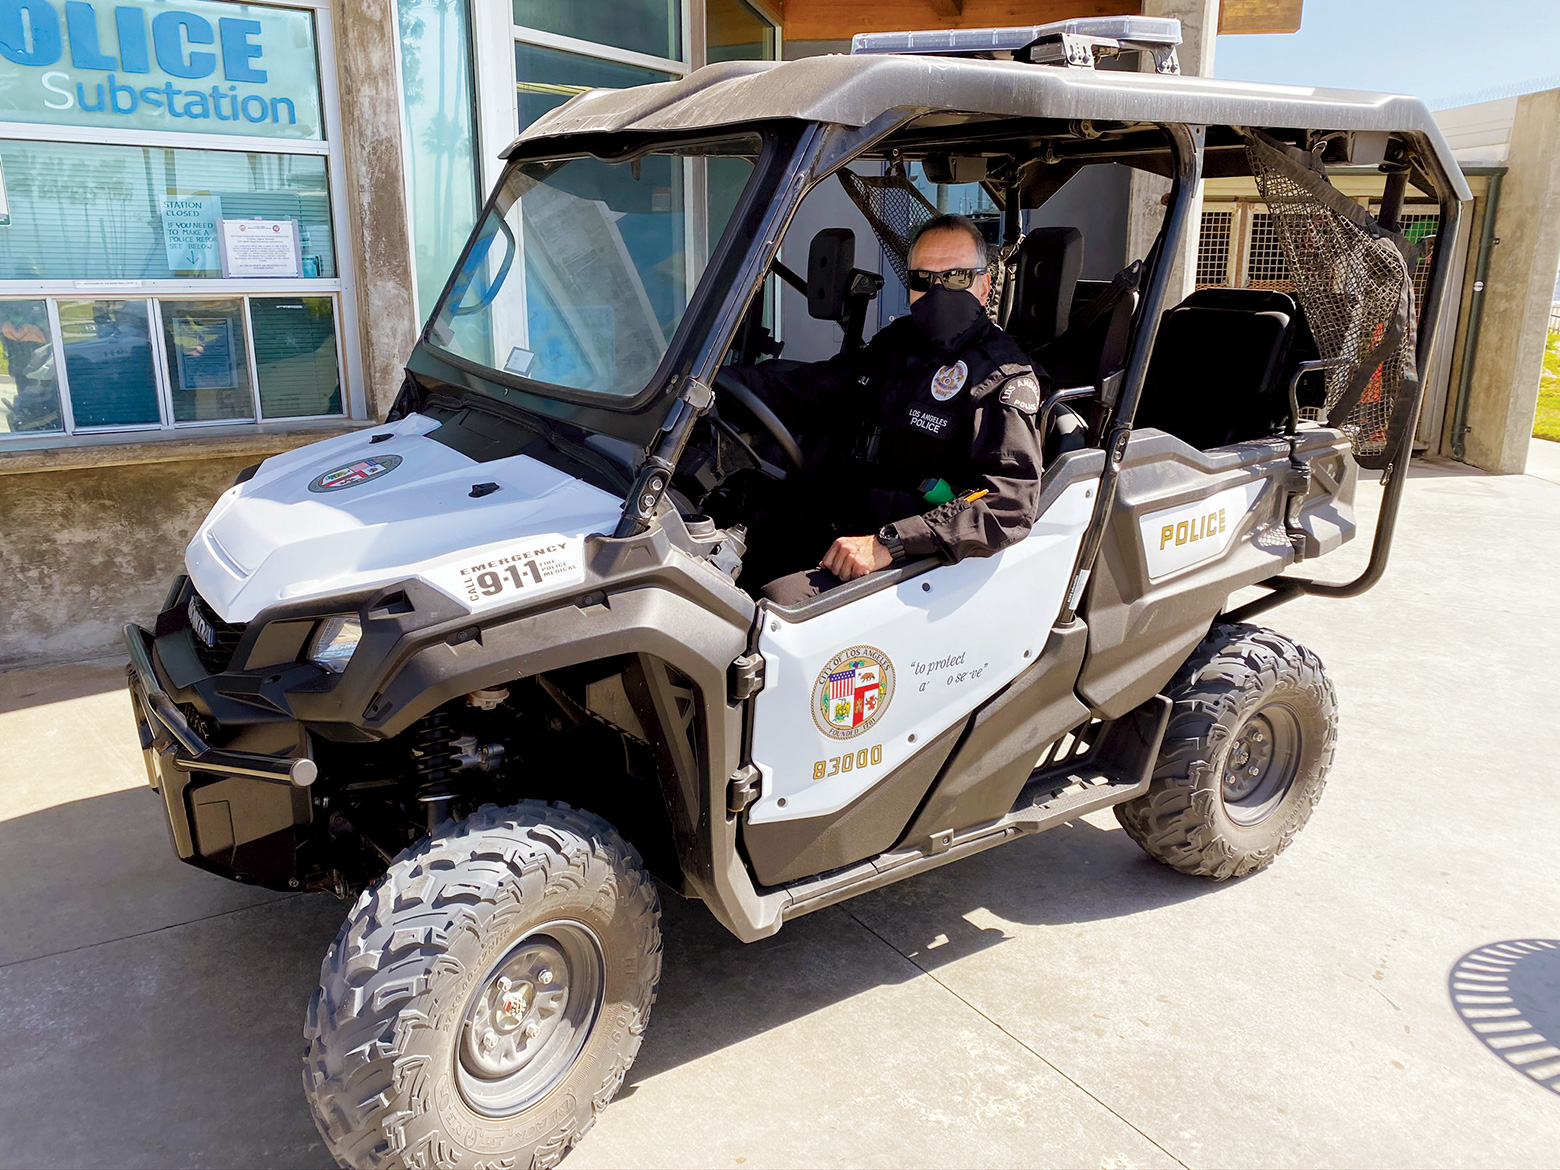 lapd-reserves-go-above-and-beyond-during-covid-19-37-venice-beach-detail-and-will-rogers-state-beach